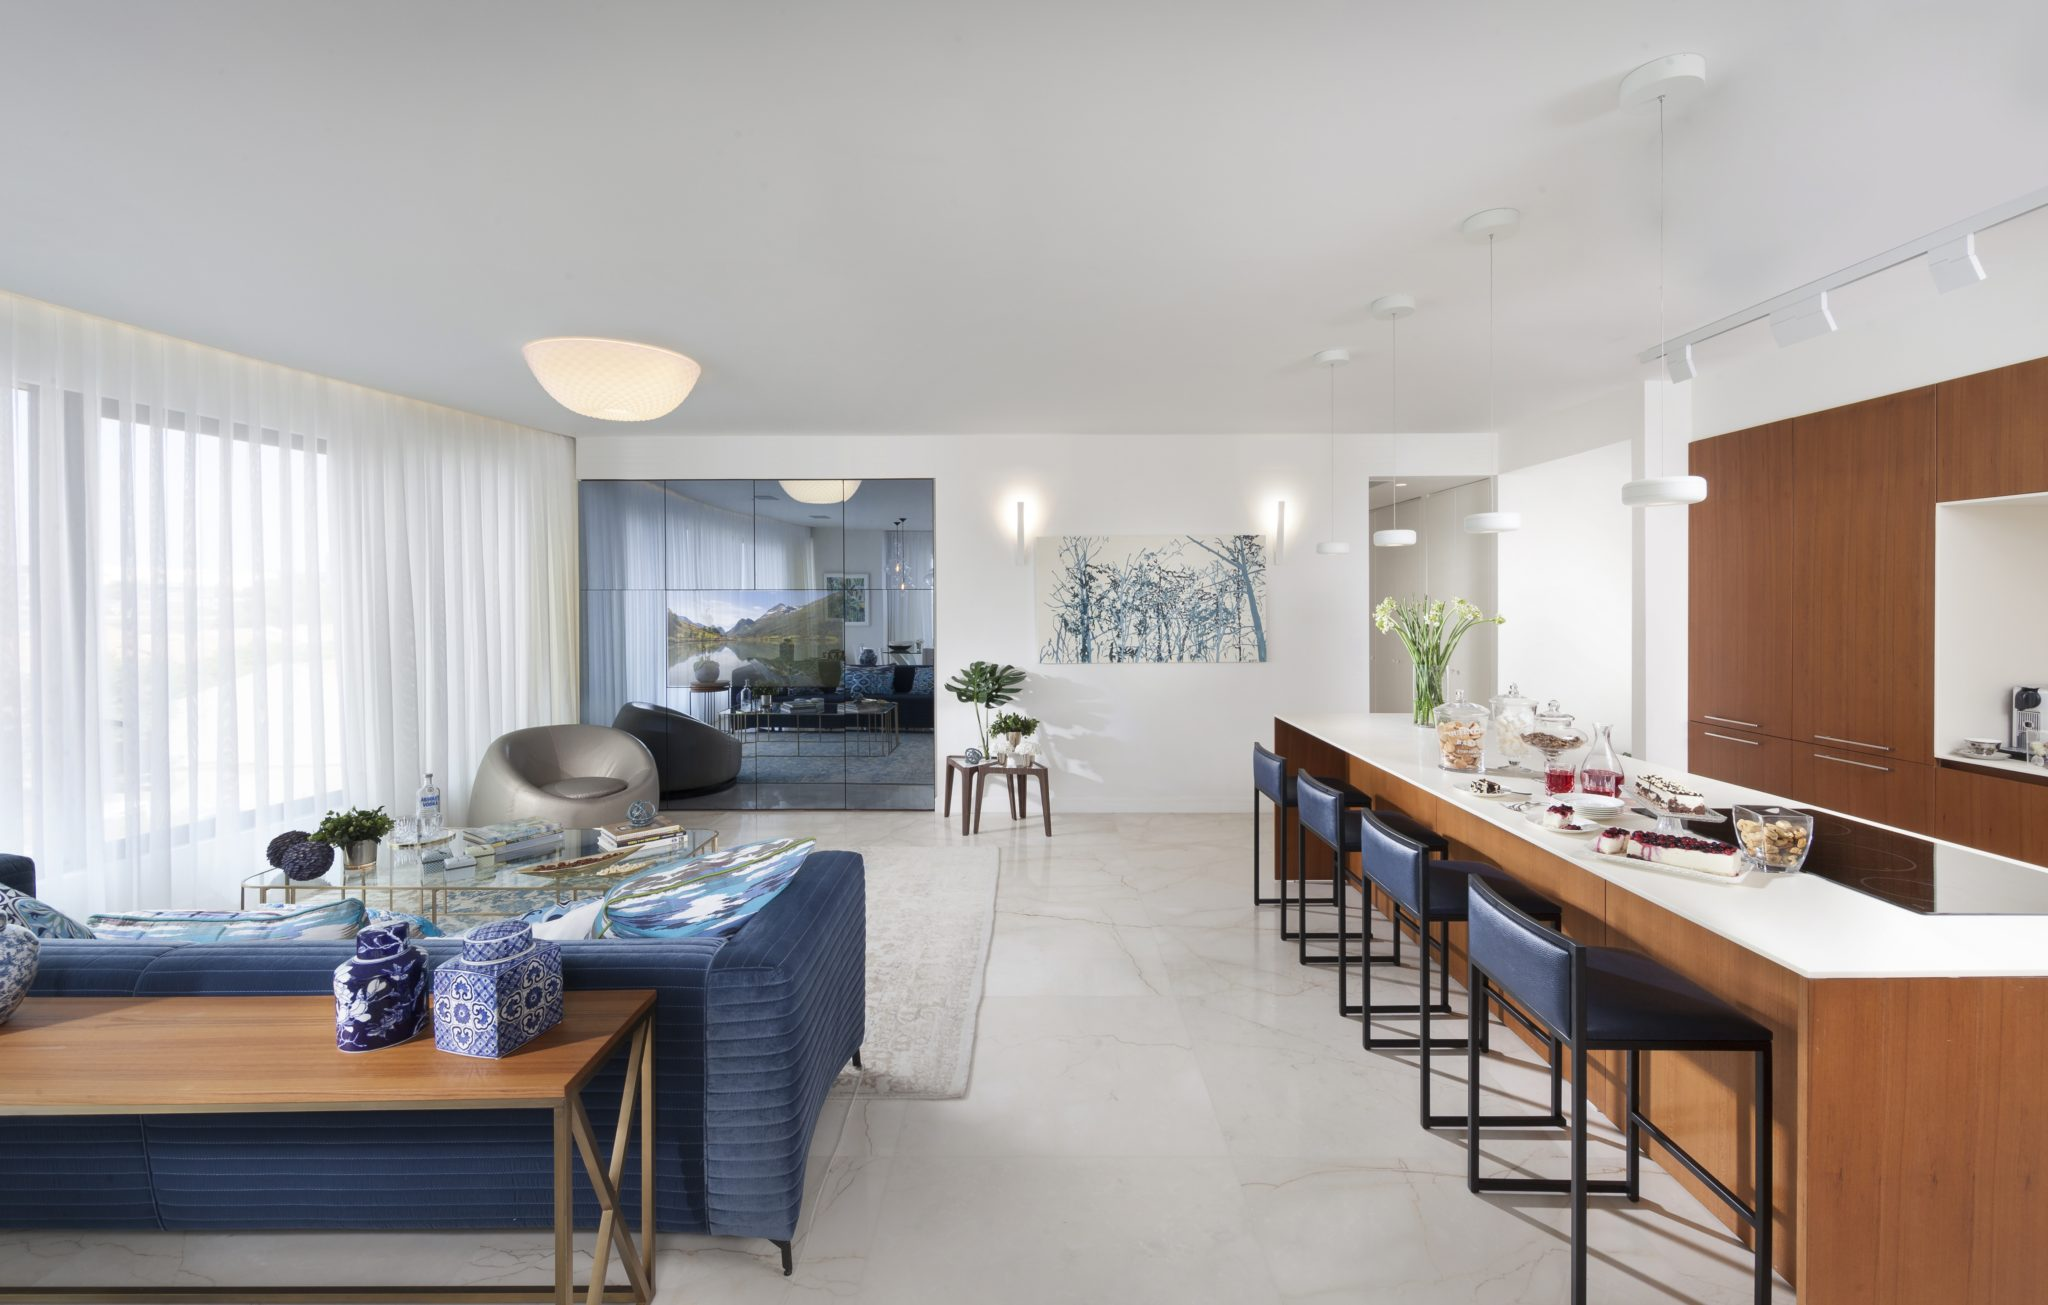 Tel-Aviv ocean-view apartment featuring open space with relaxing cool and warm colors. By Annette Frommer Interior Design